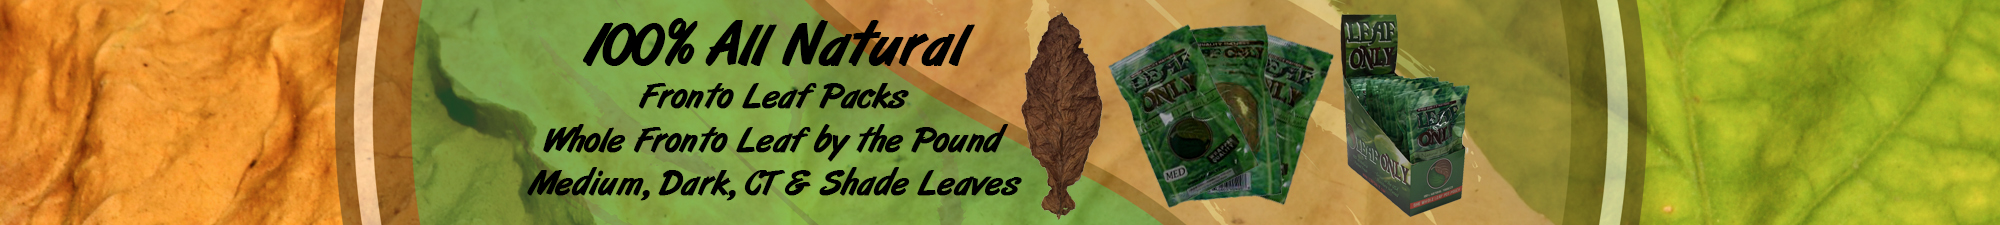 Leaf Only Fronto Leaf Packs. Single Fronto Leaves for sale Leaf Only brand.